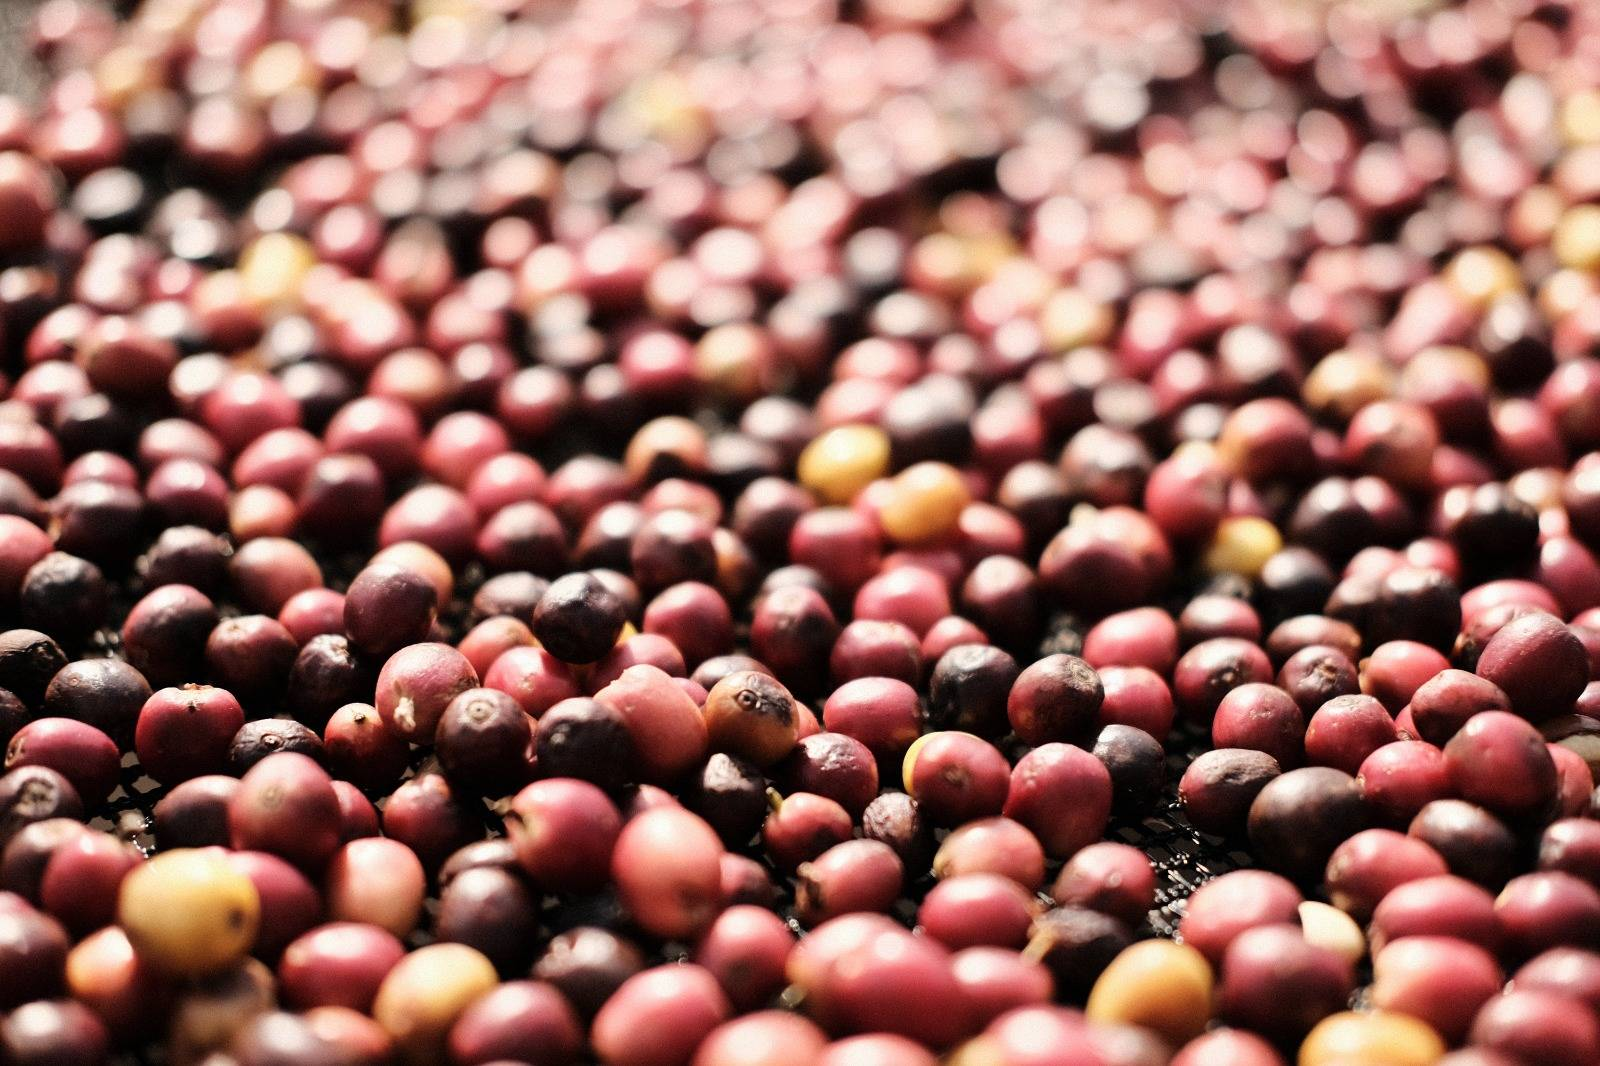 ethically sourced coffee beans